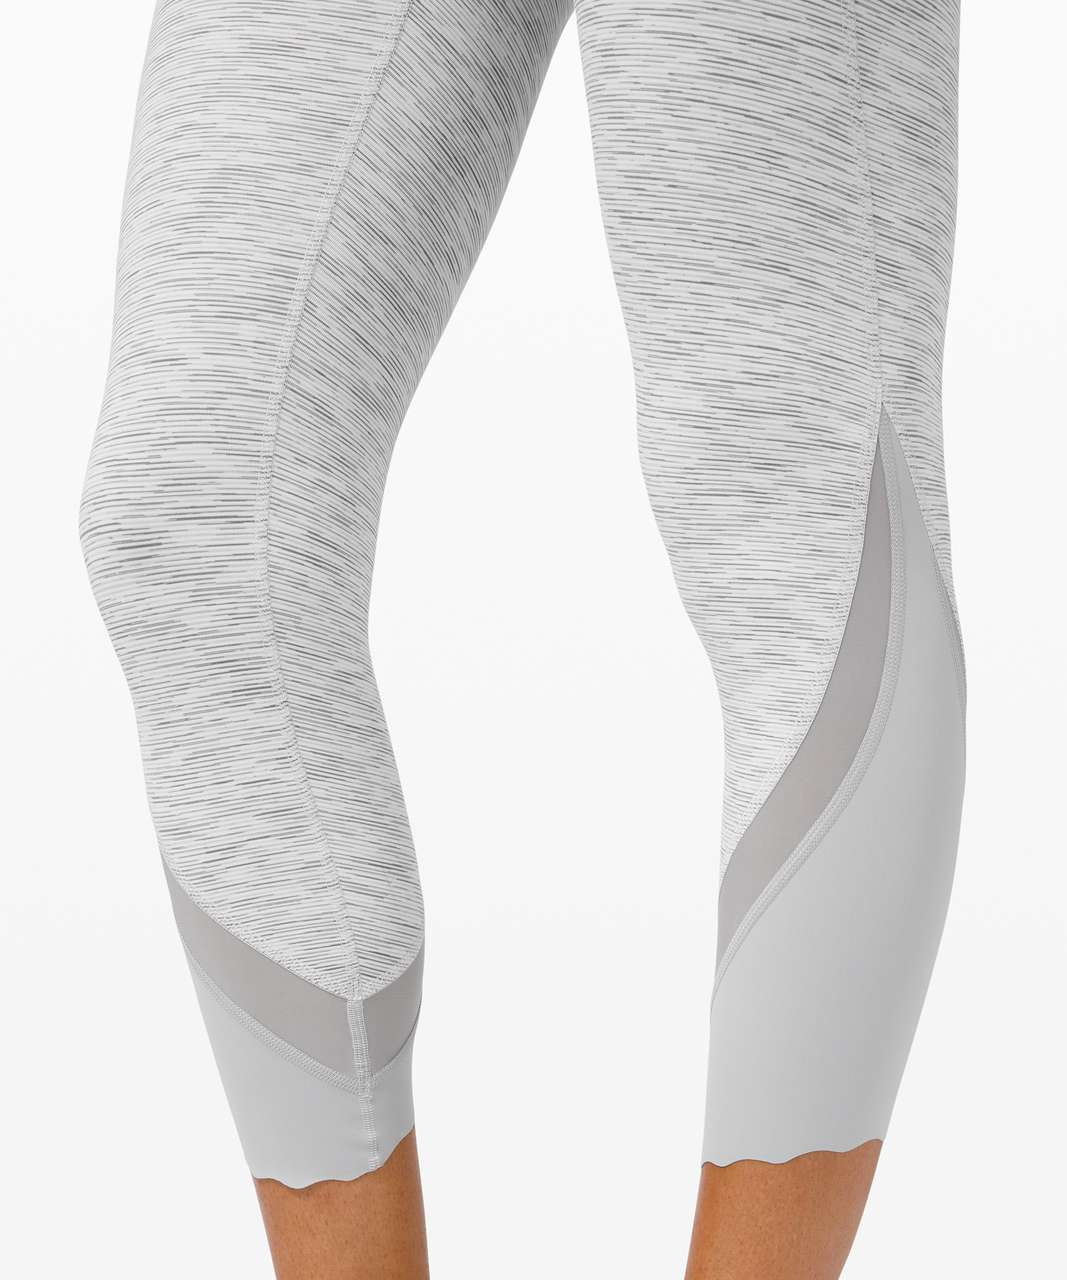 """Lululemon Wunder Under Crop High-Rise *Roll Down Scallop Full-On Luxtreme 23"""" - Wee Are From Space Nimbus Battleship"""